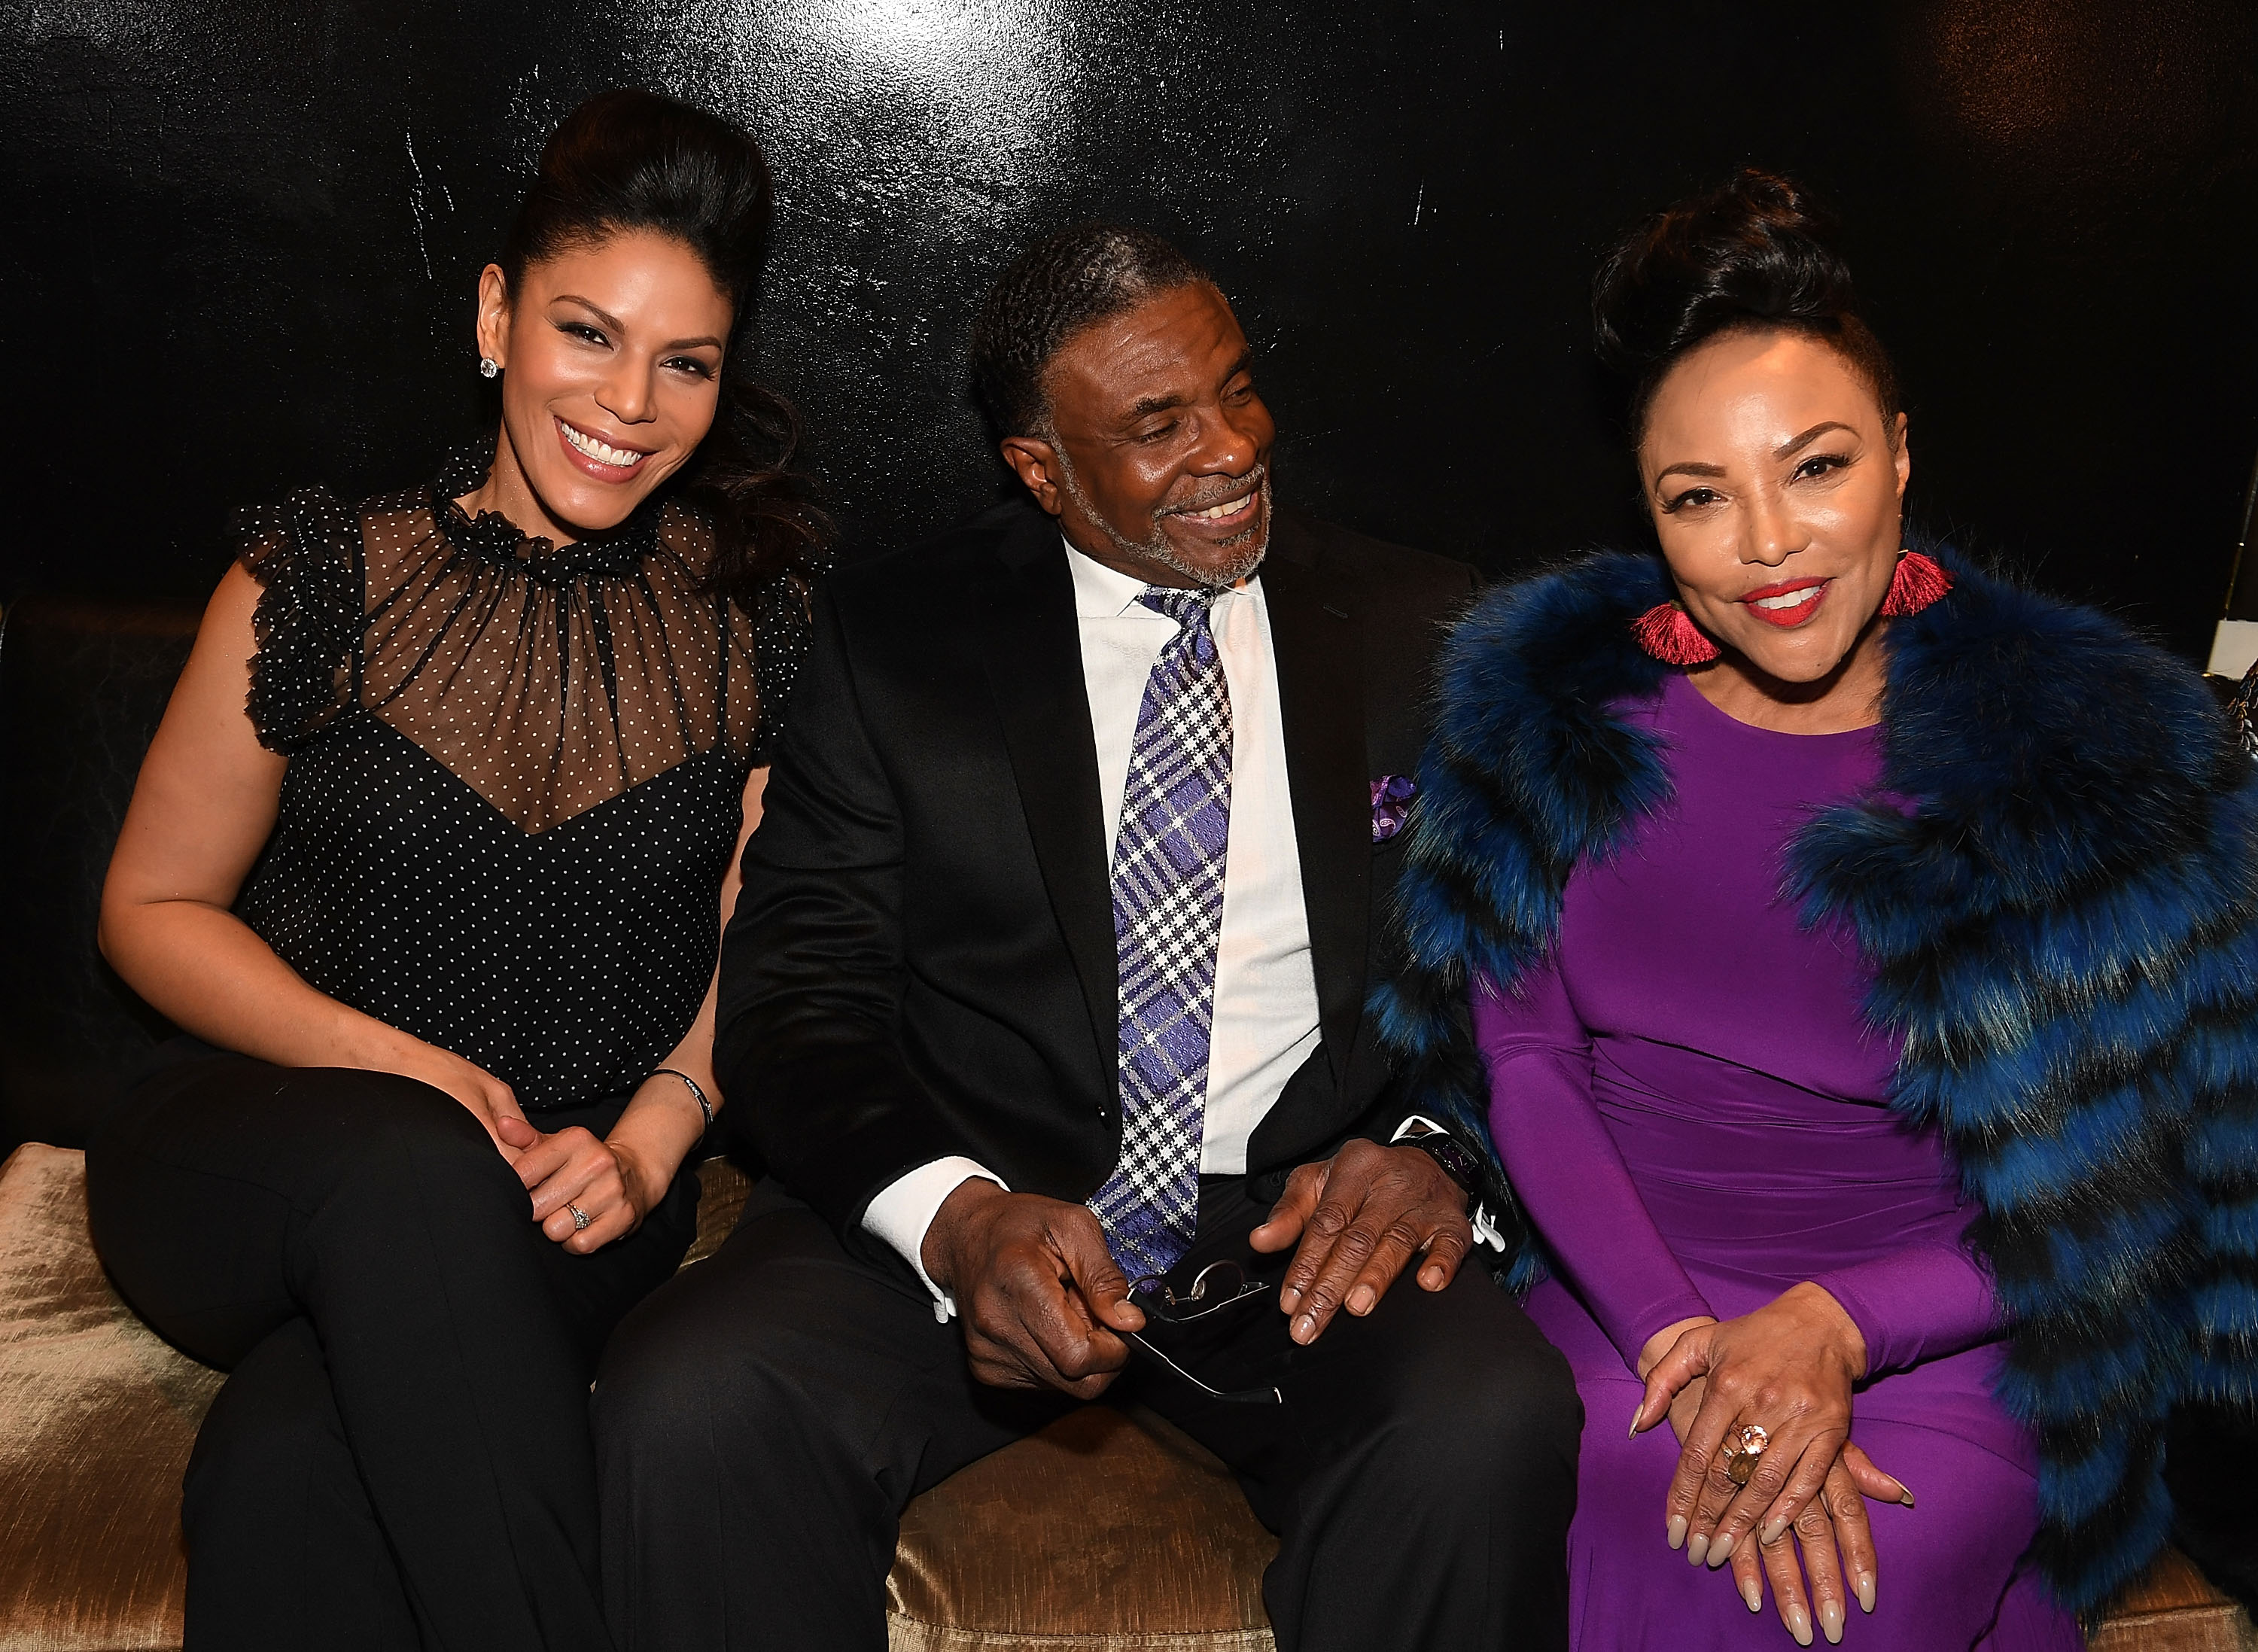 greenleaf cast at season 2 premiere party in atlanta